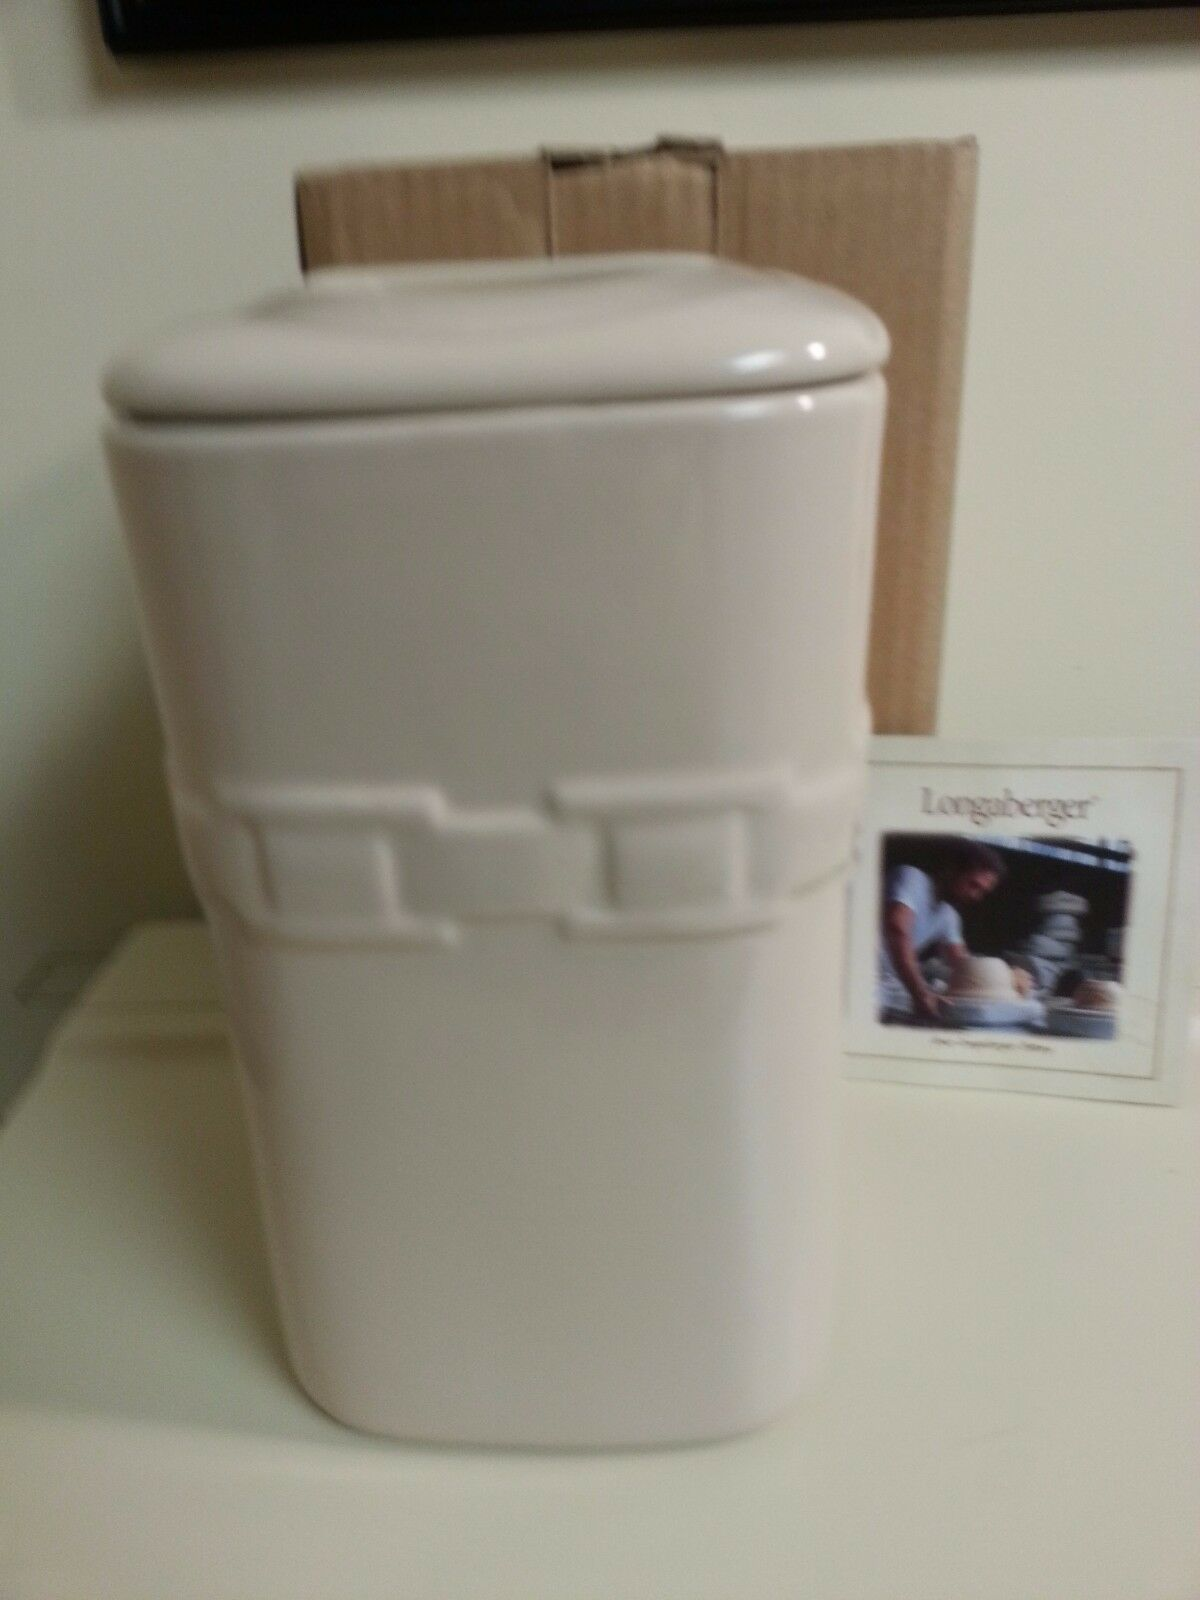 Longaberger Large Ivory Canister With Lid Pottery New In Box Holds 70 OZ